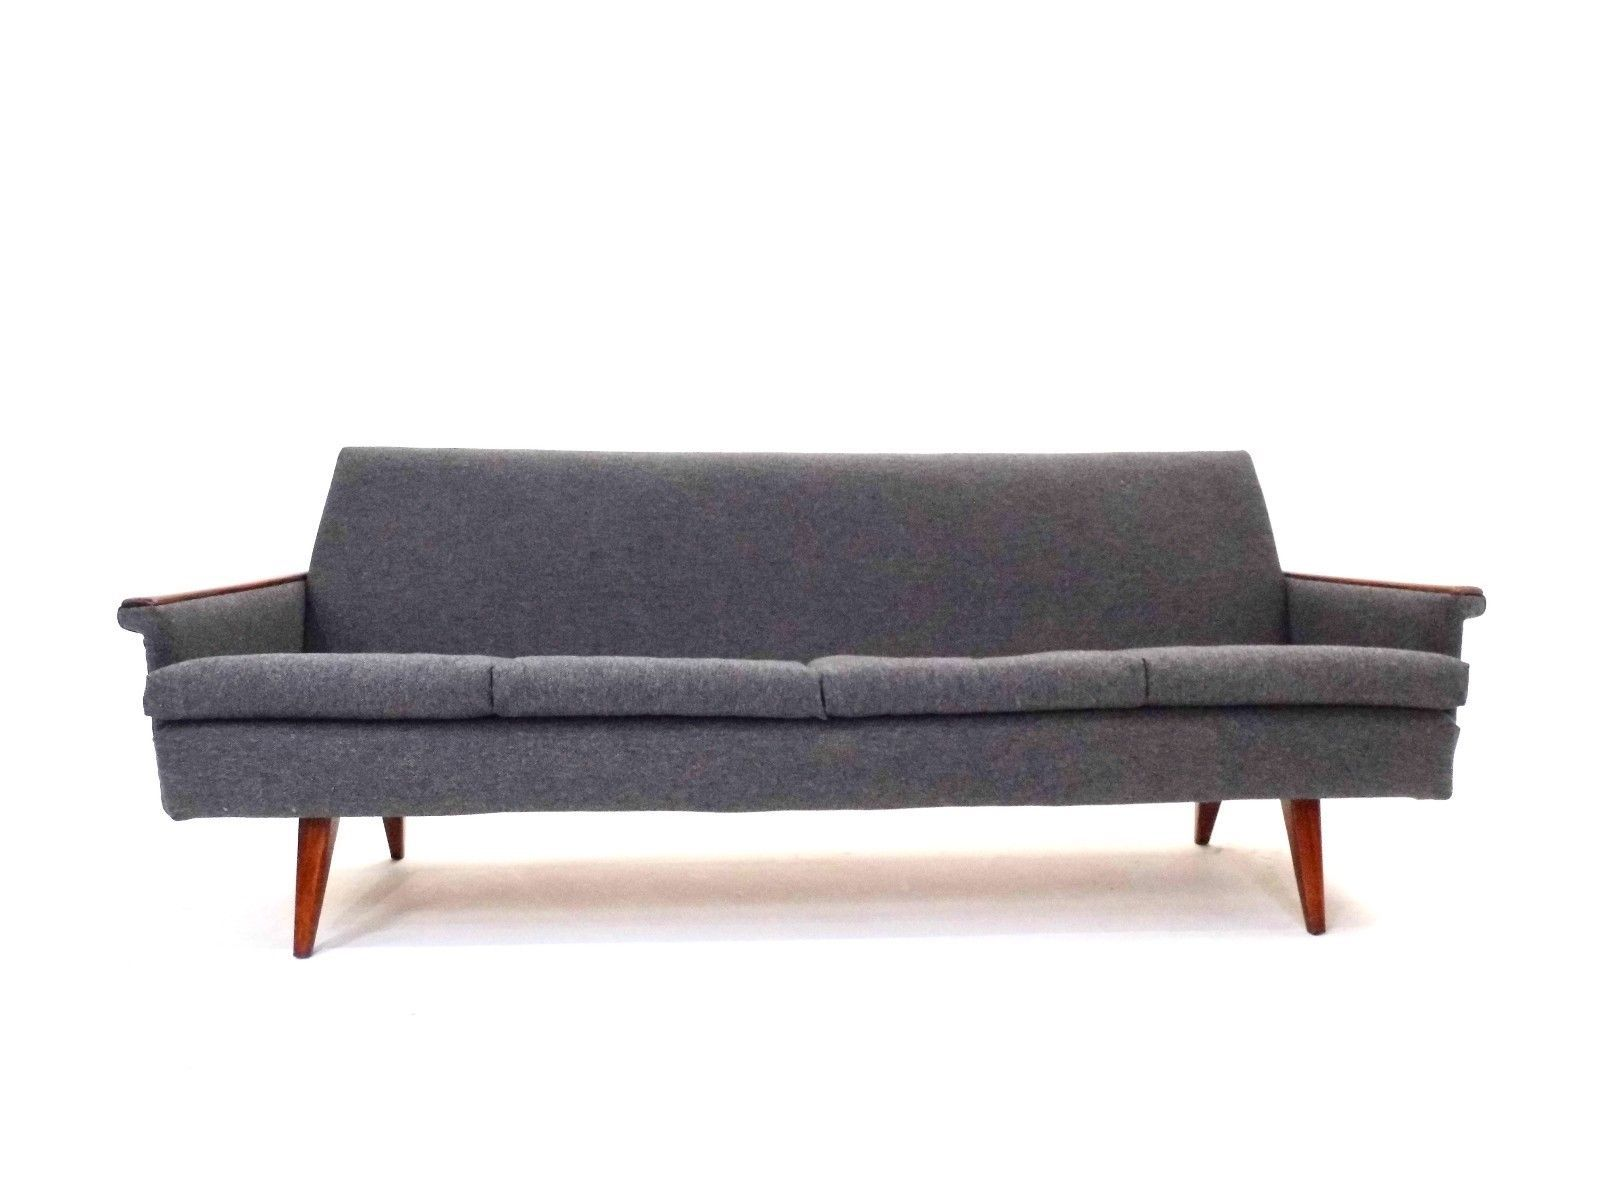 norwegisches 3 sitzer sofa aus dunkelgrauer wolle teak 1960er bei pamono kaufen. Black Bedroom Furniture Sets. Home Design Ideas